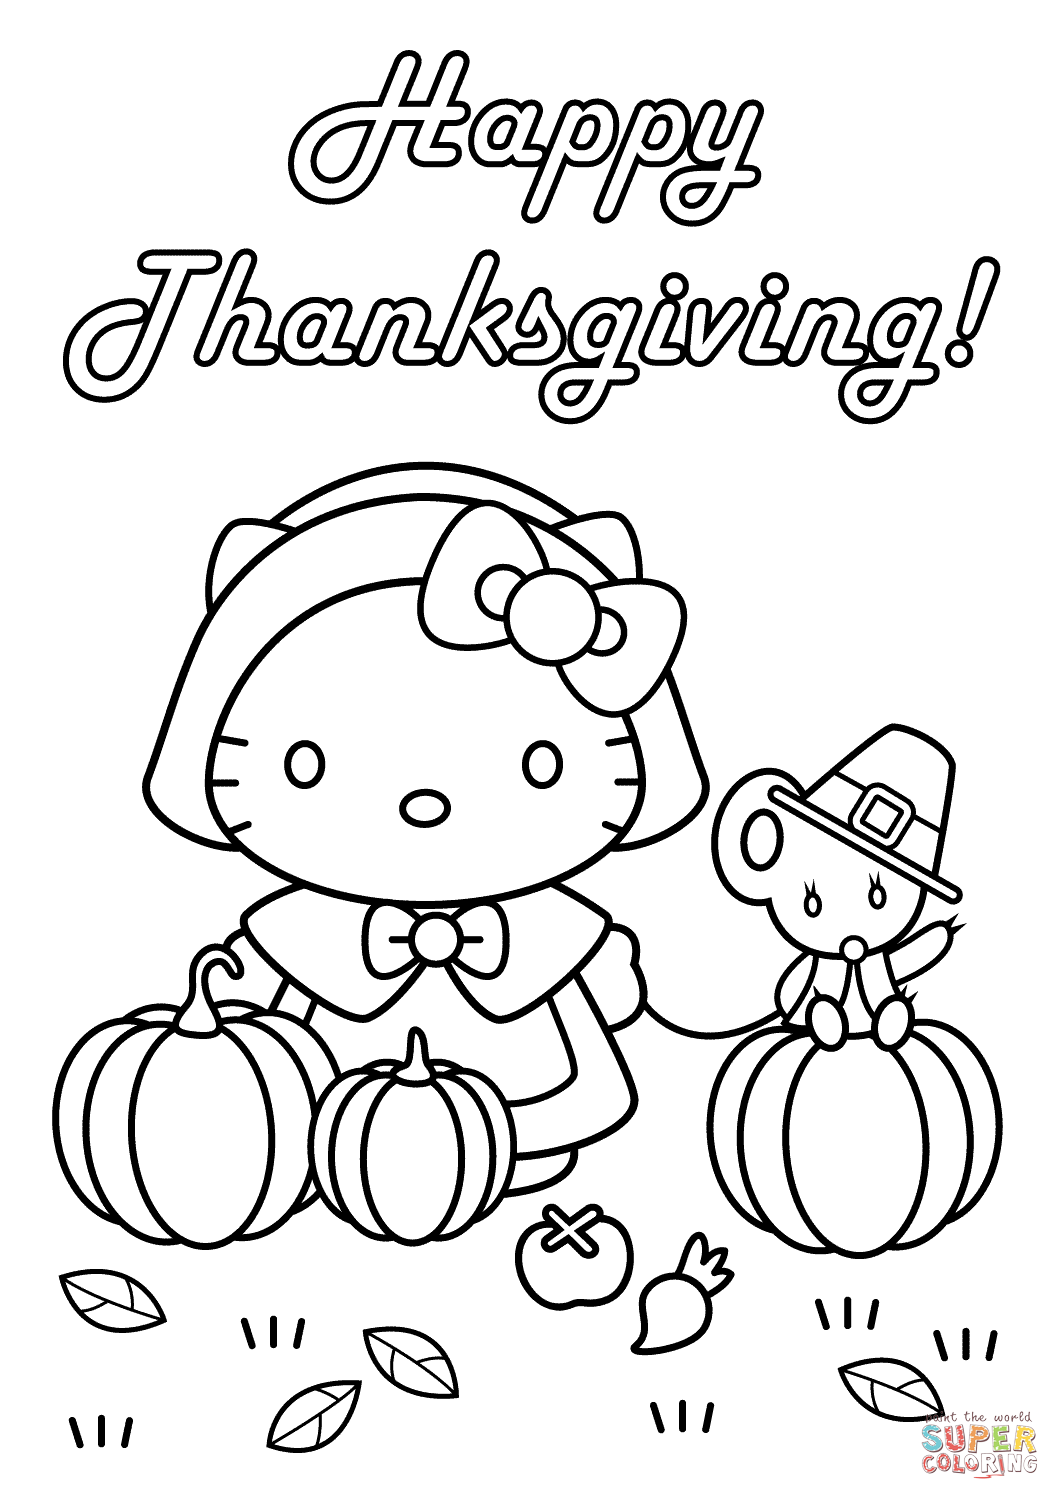 Thanksgiving Coloring Sheets Worksheet For Preschoolers